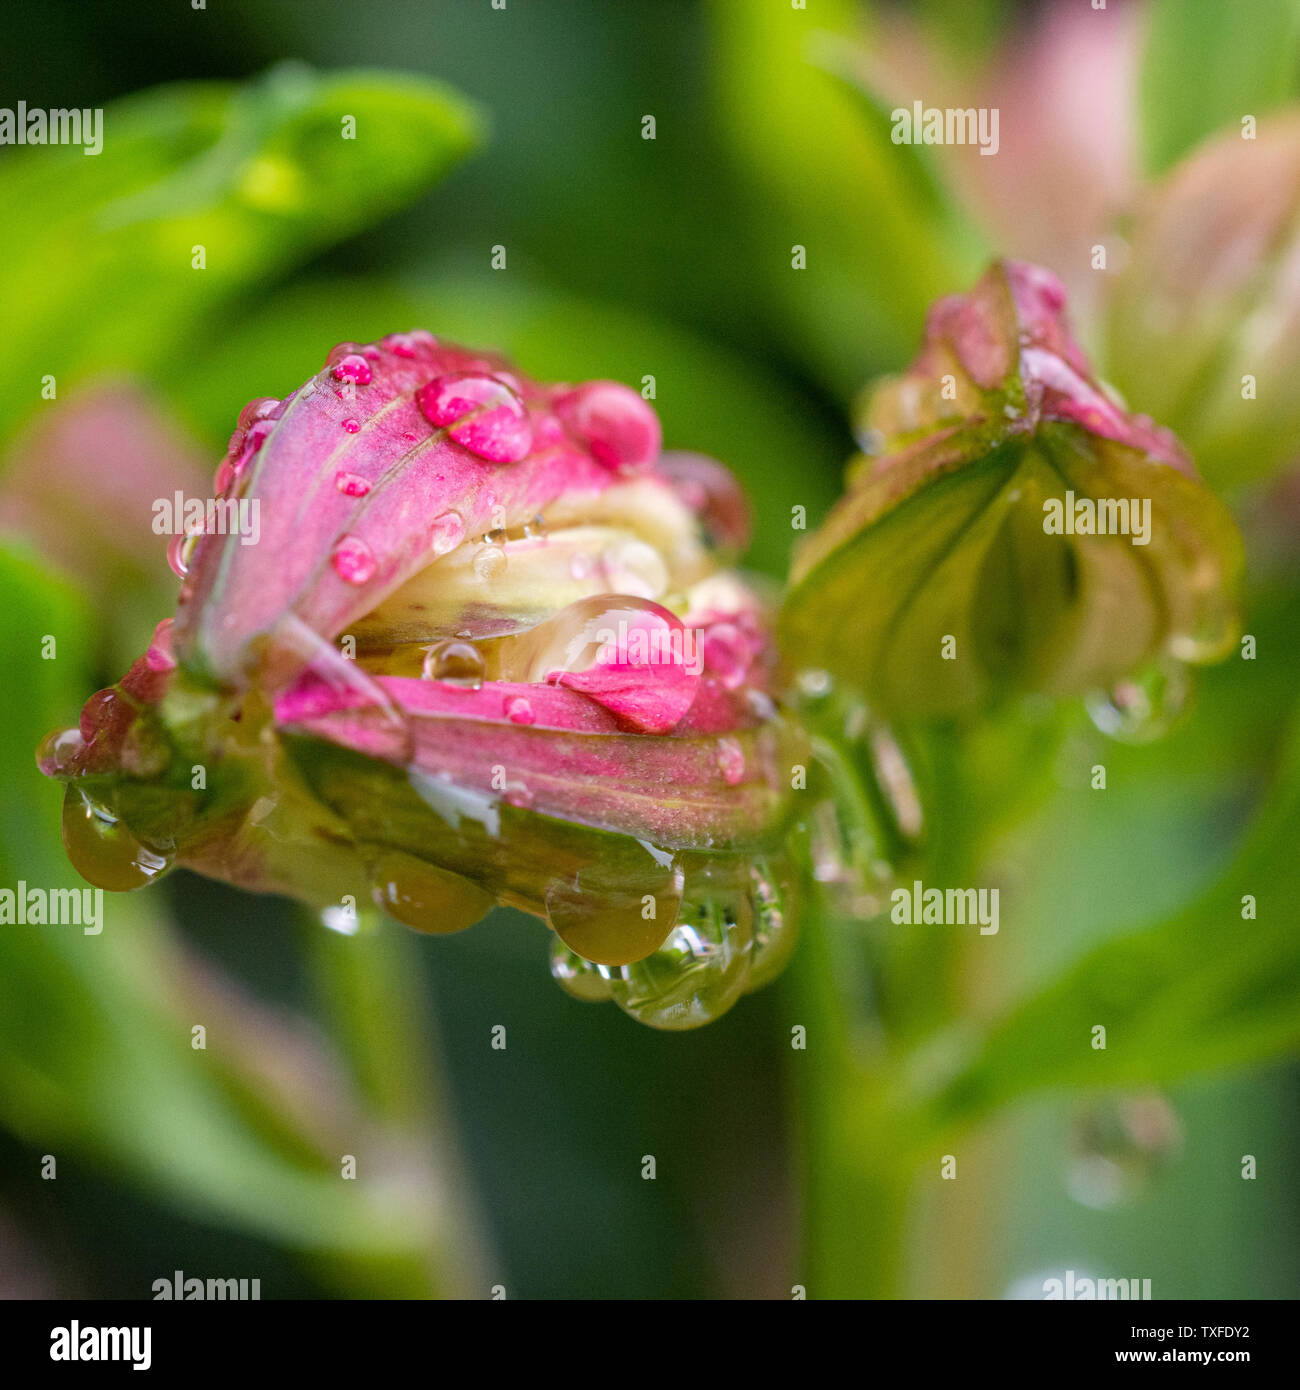 Alstroemeria peruvian lily flower buds with water droplets after rain Stock Photo